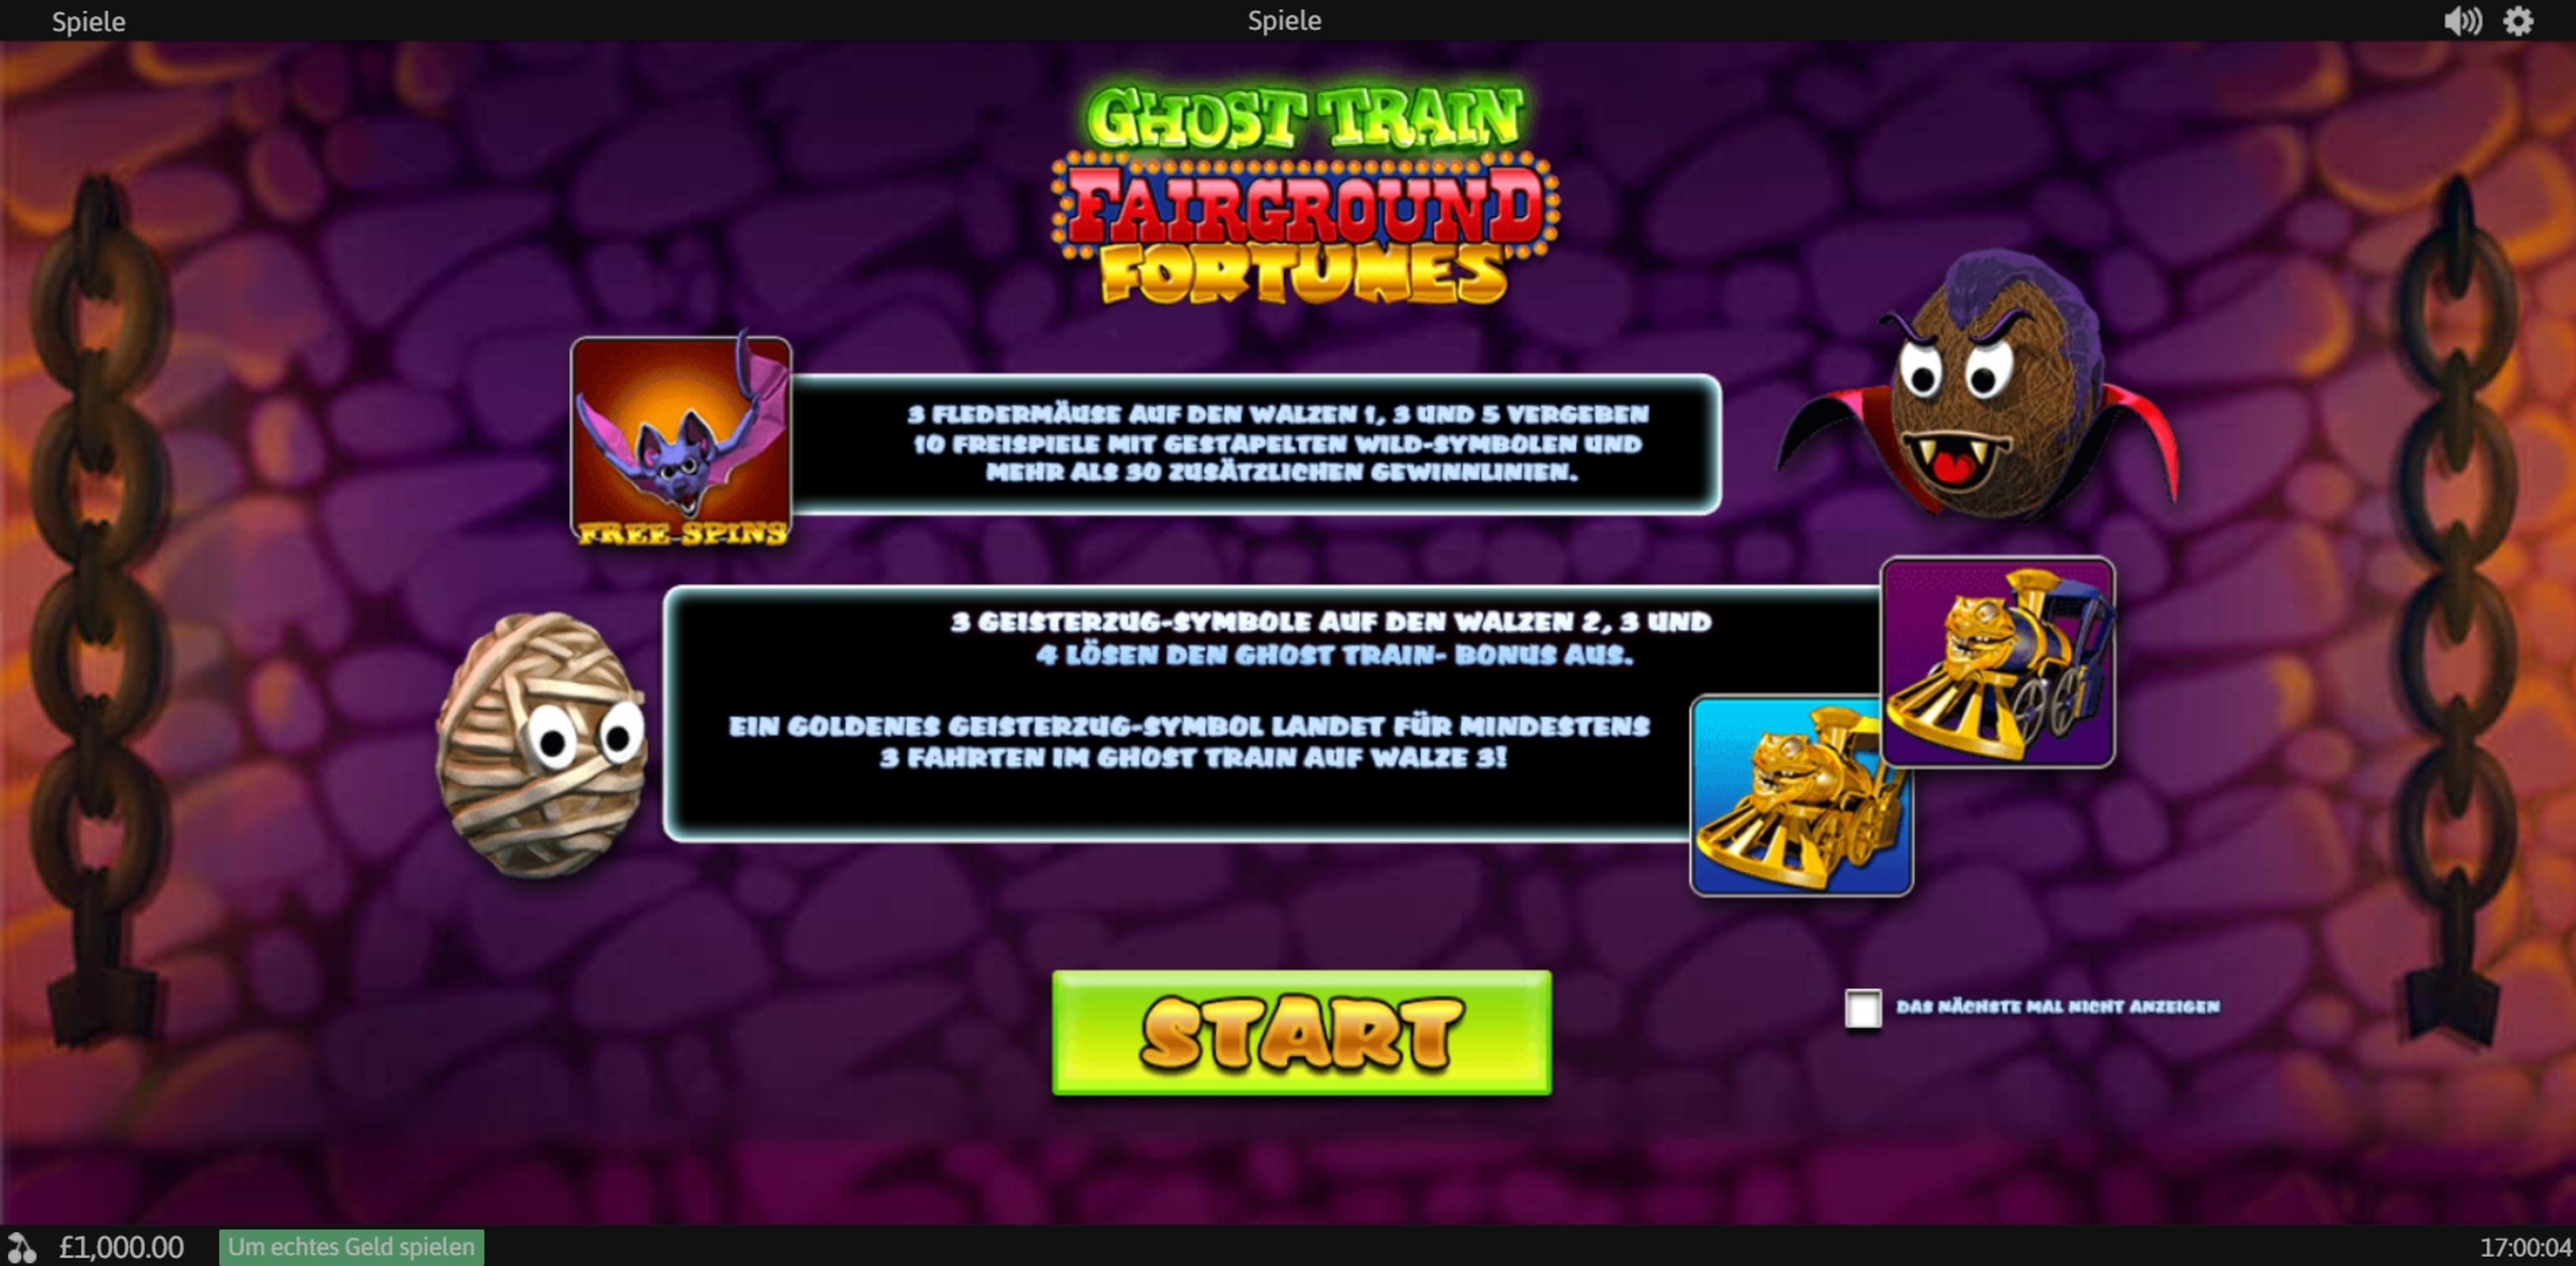 Play Fairground Fortunes Ghost Train Free Casino Slot Game by Psiclone Games